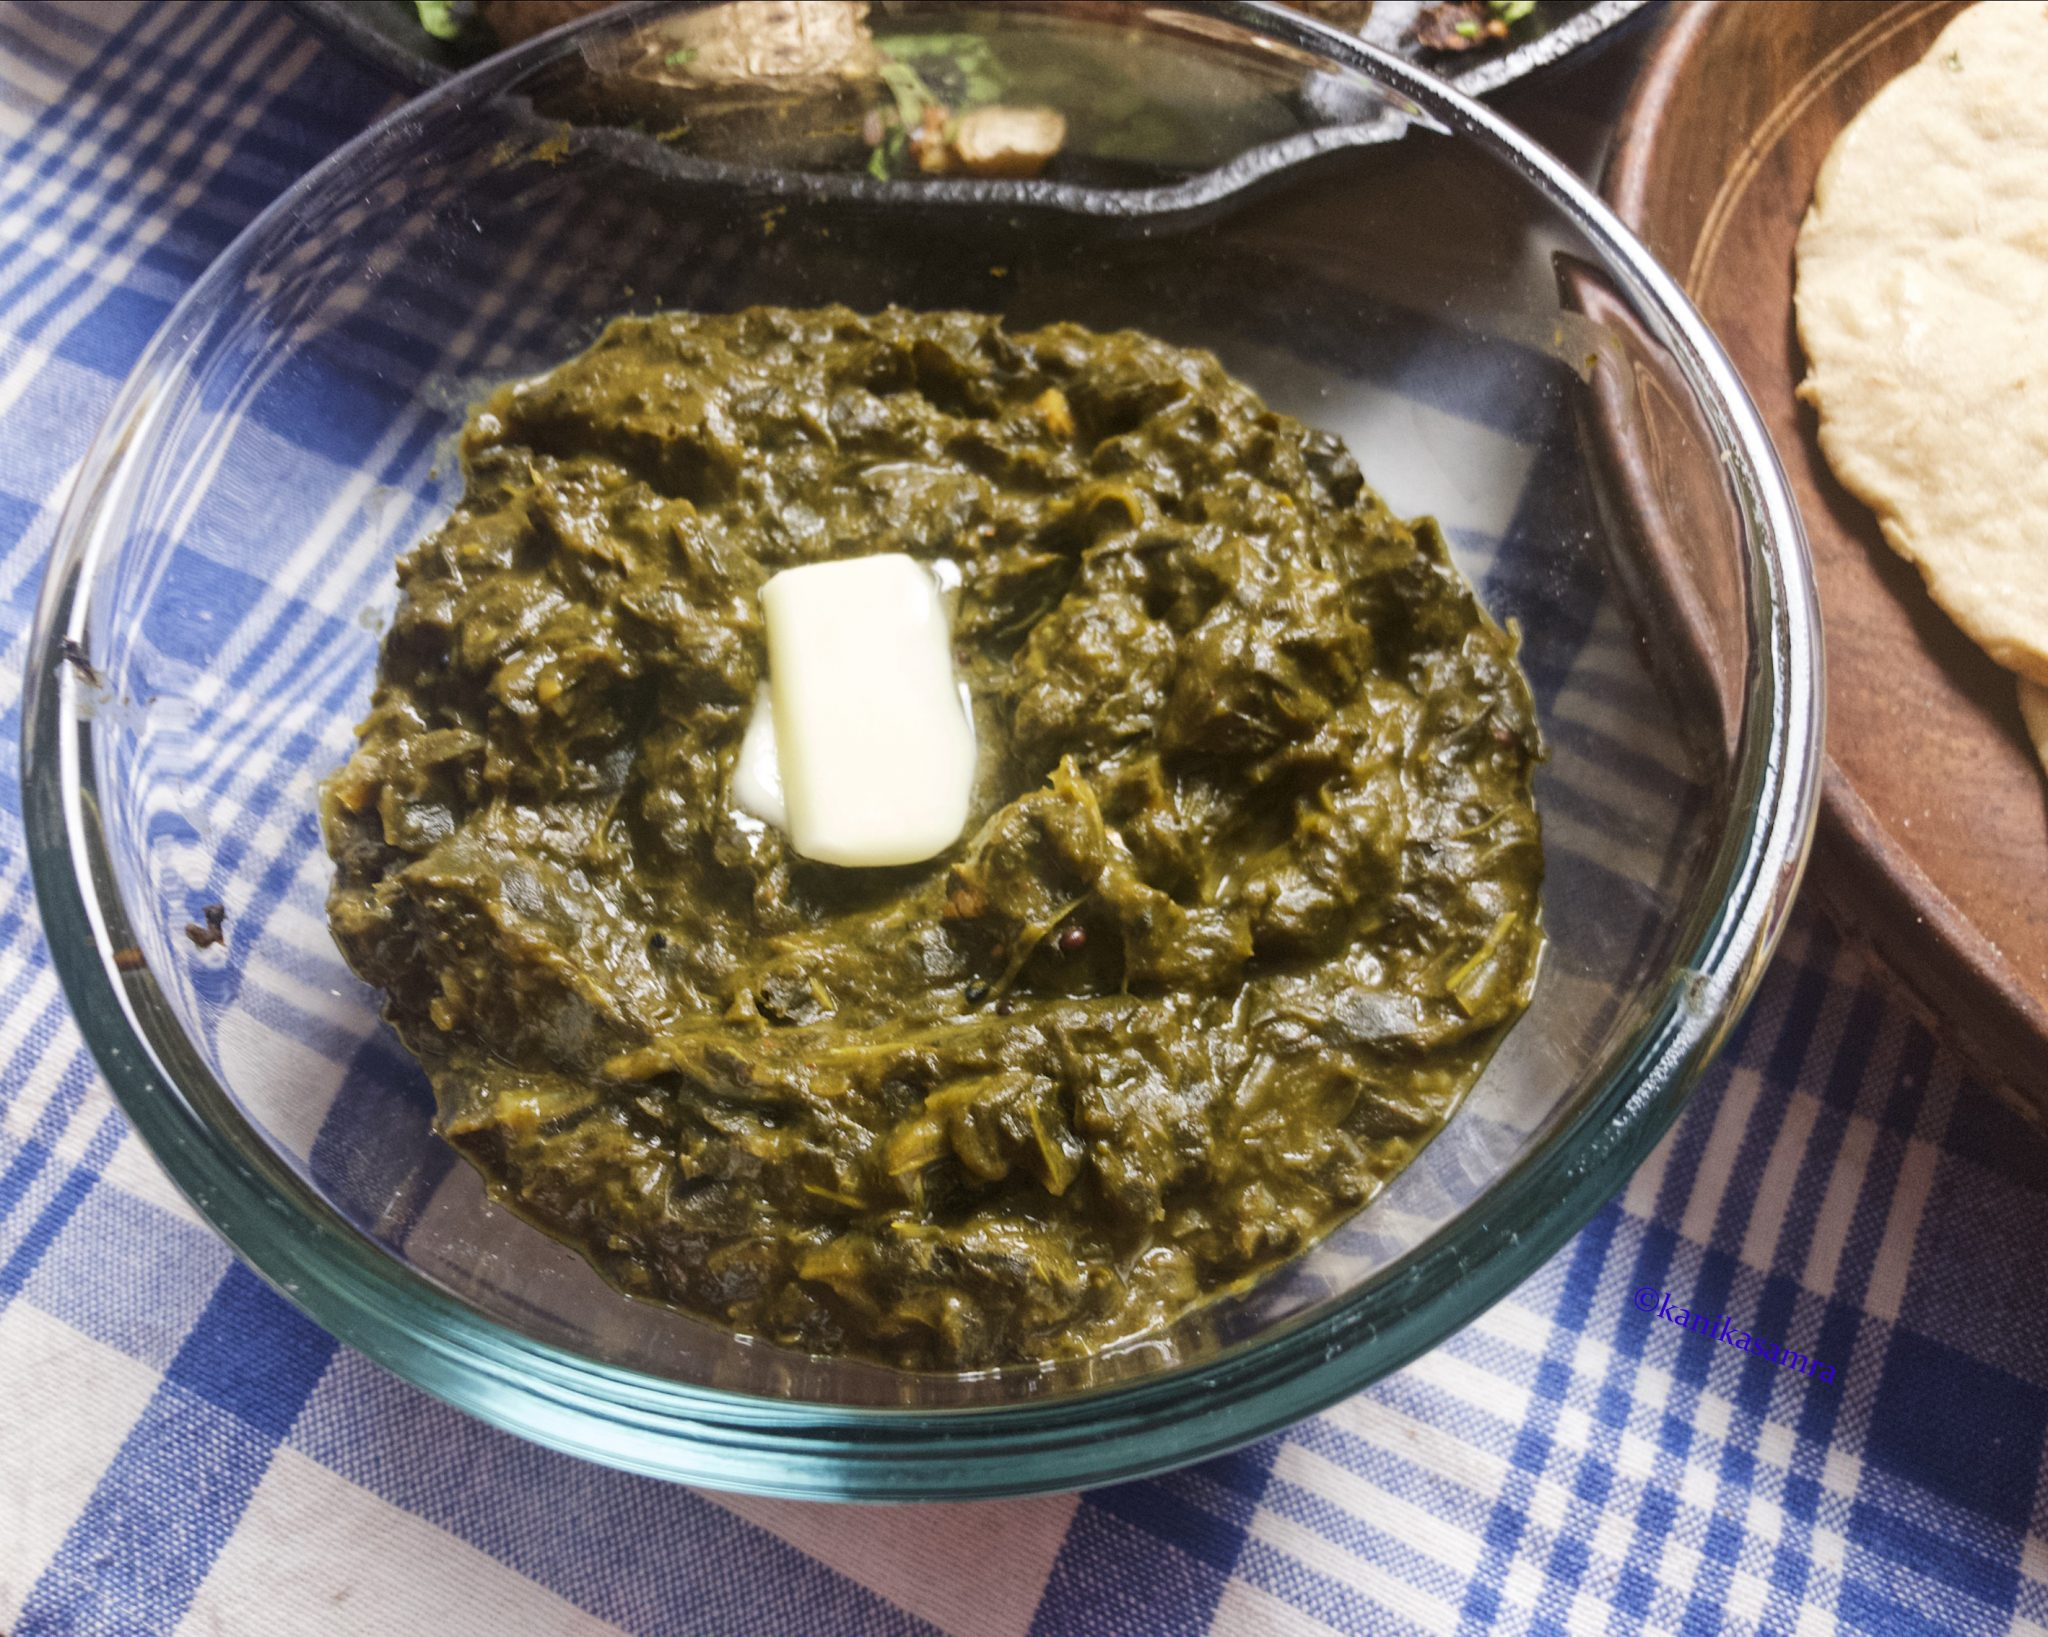 Haak ka saag in a serving bowl.